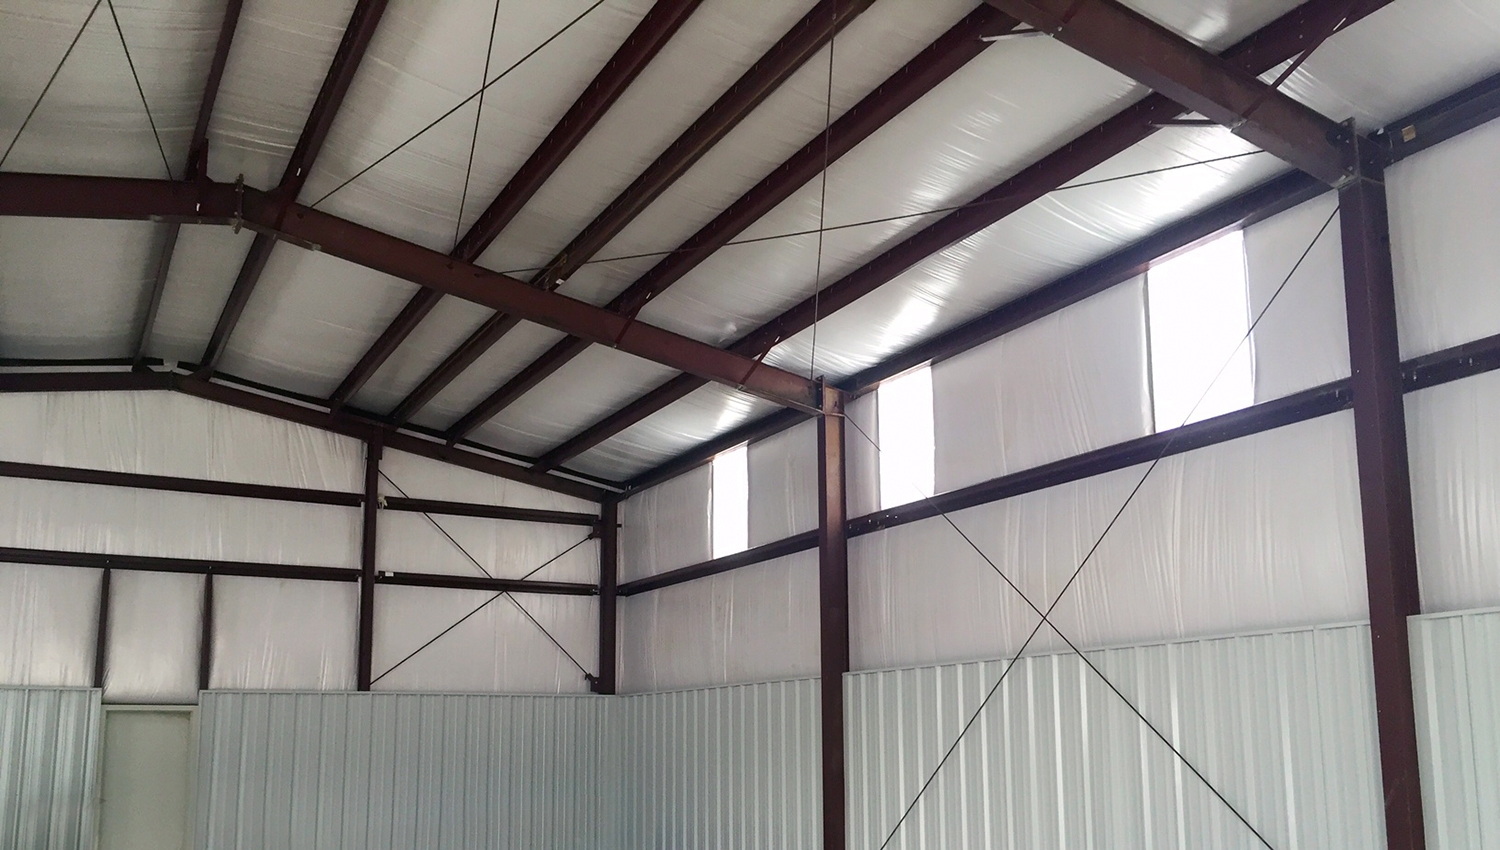 Best Insulation for Metal Buildings